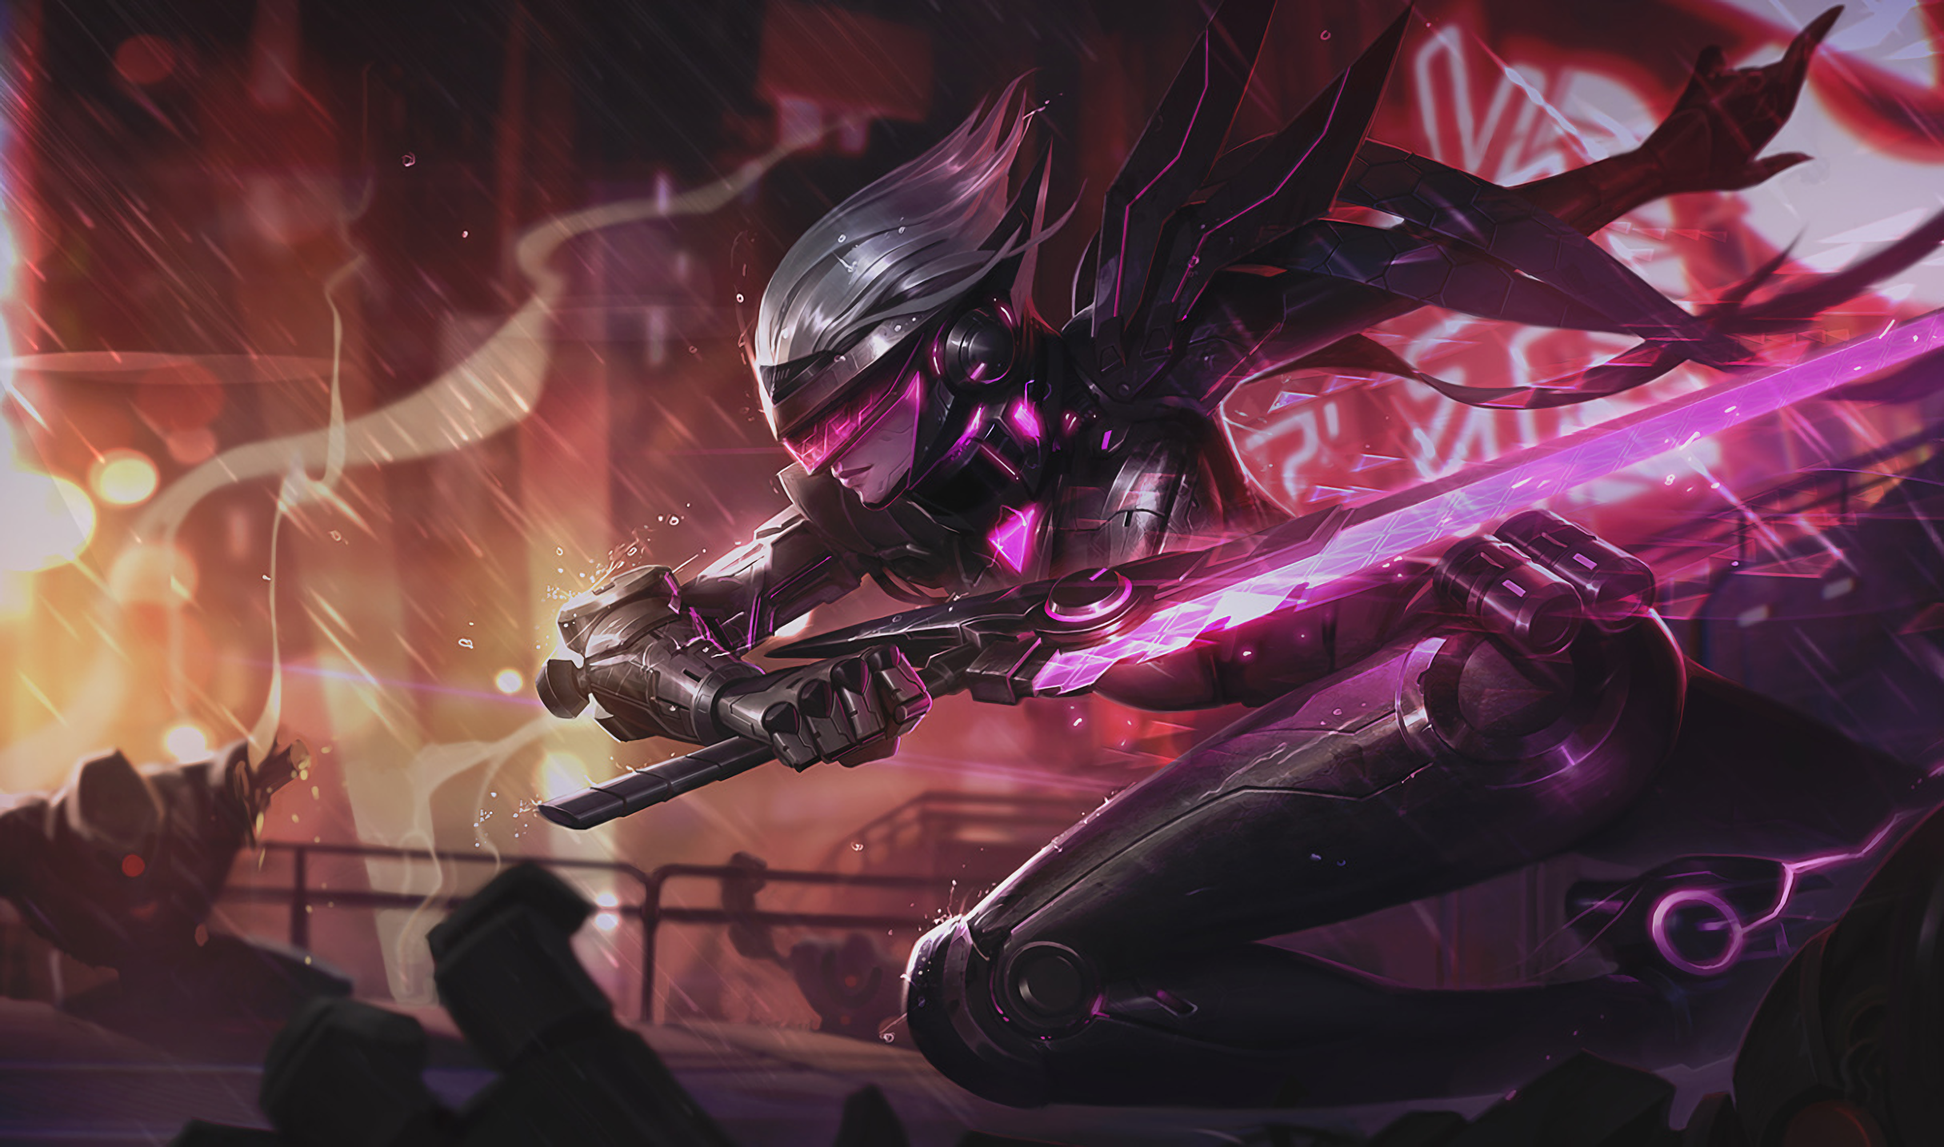 3232 League Of Legends HD Wallpapers | Backgrounds - Wallpaper Abyss